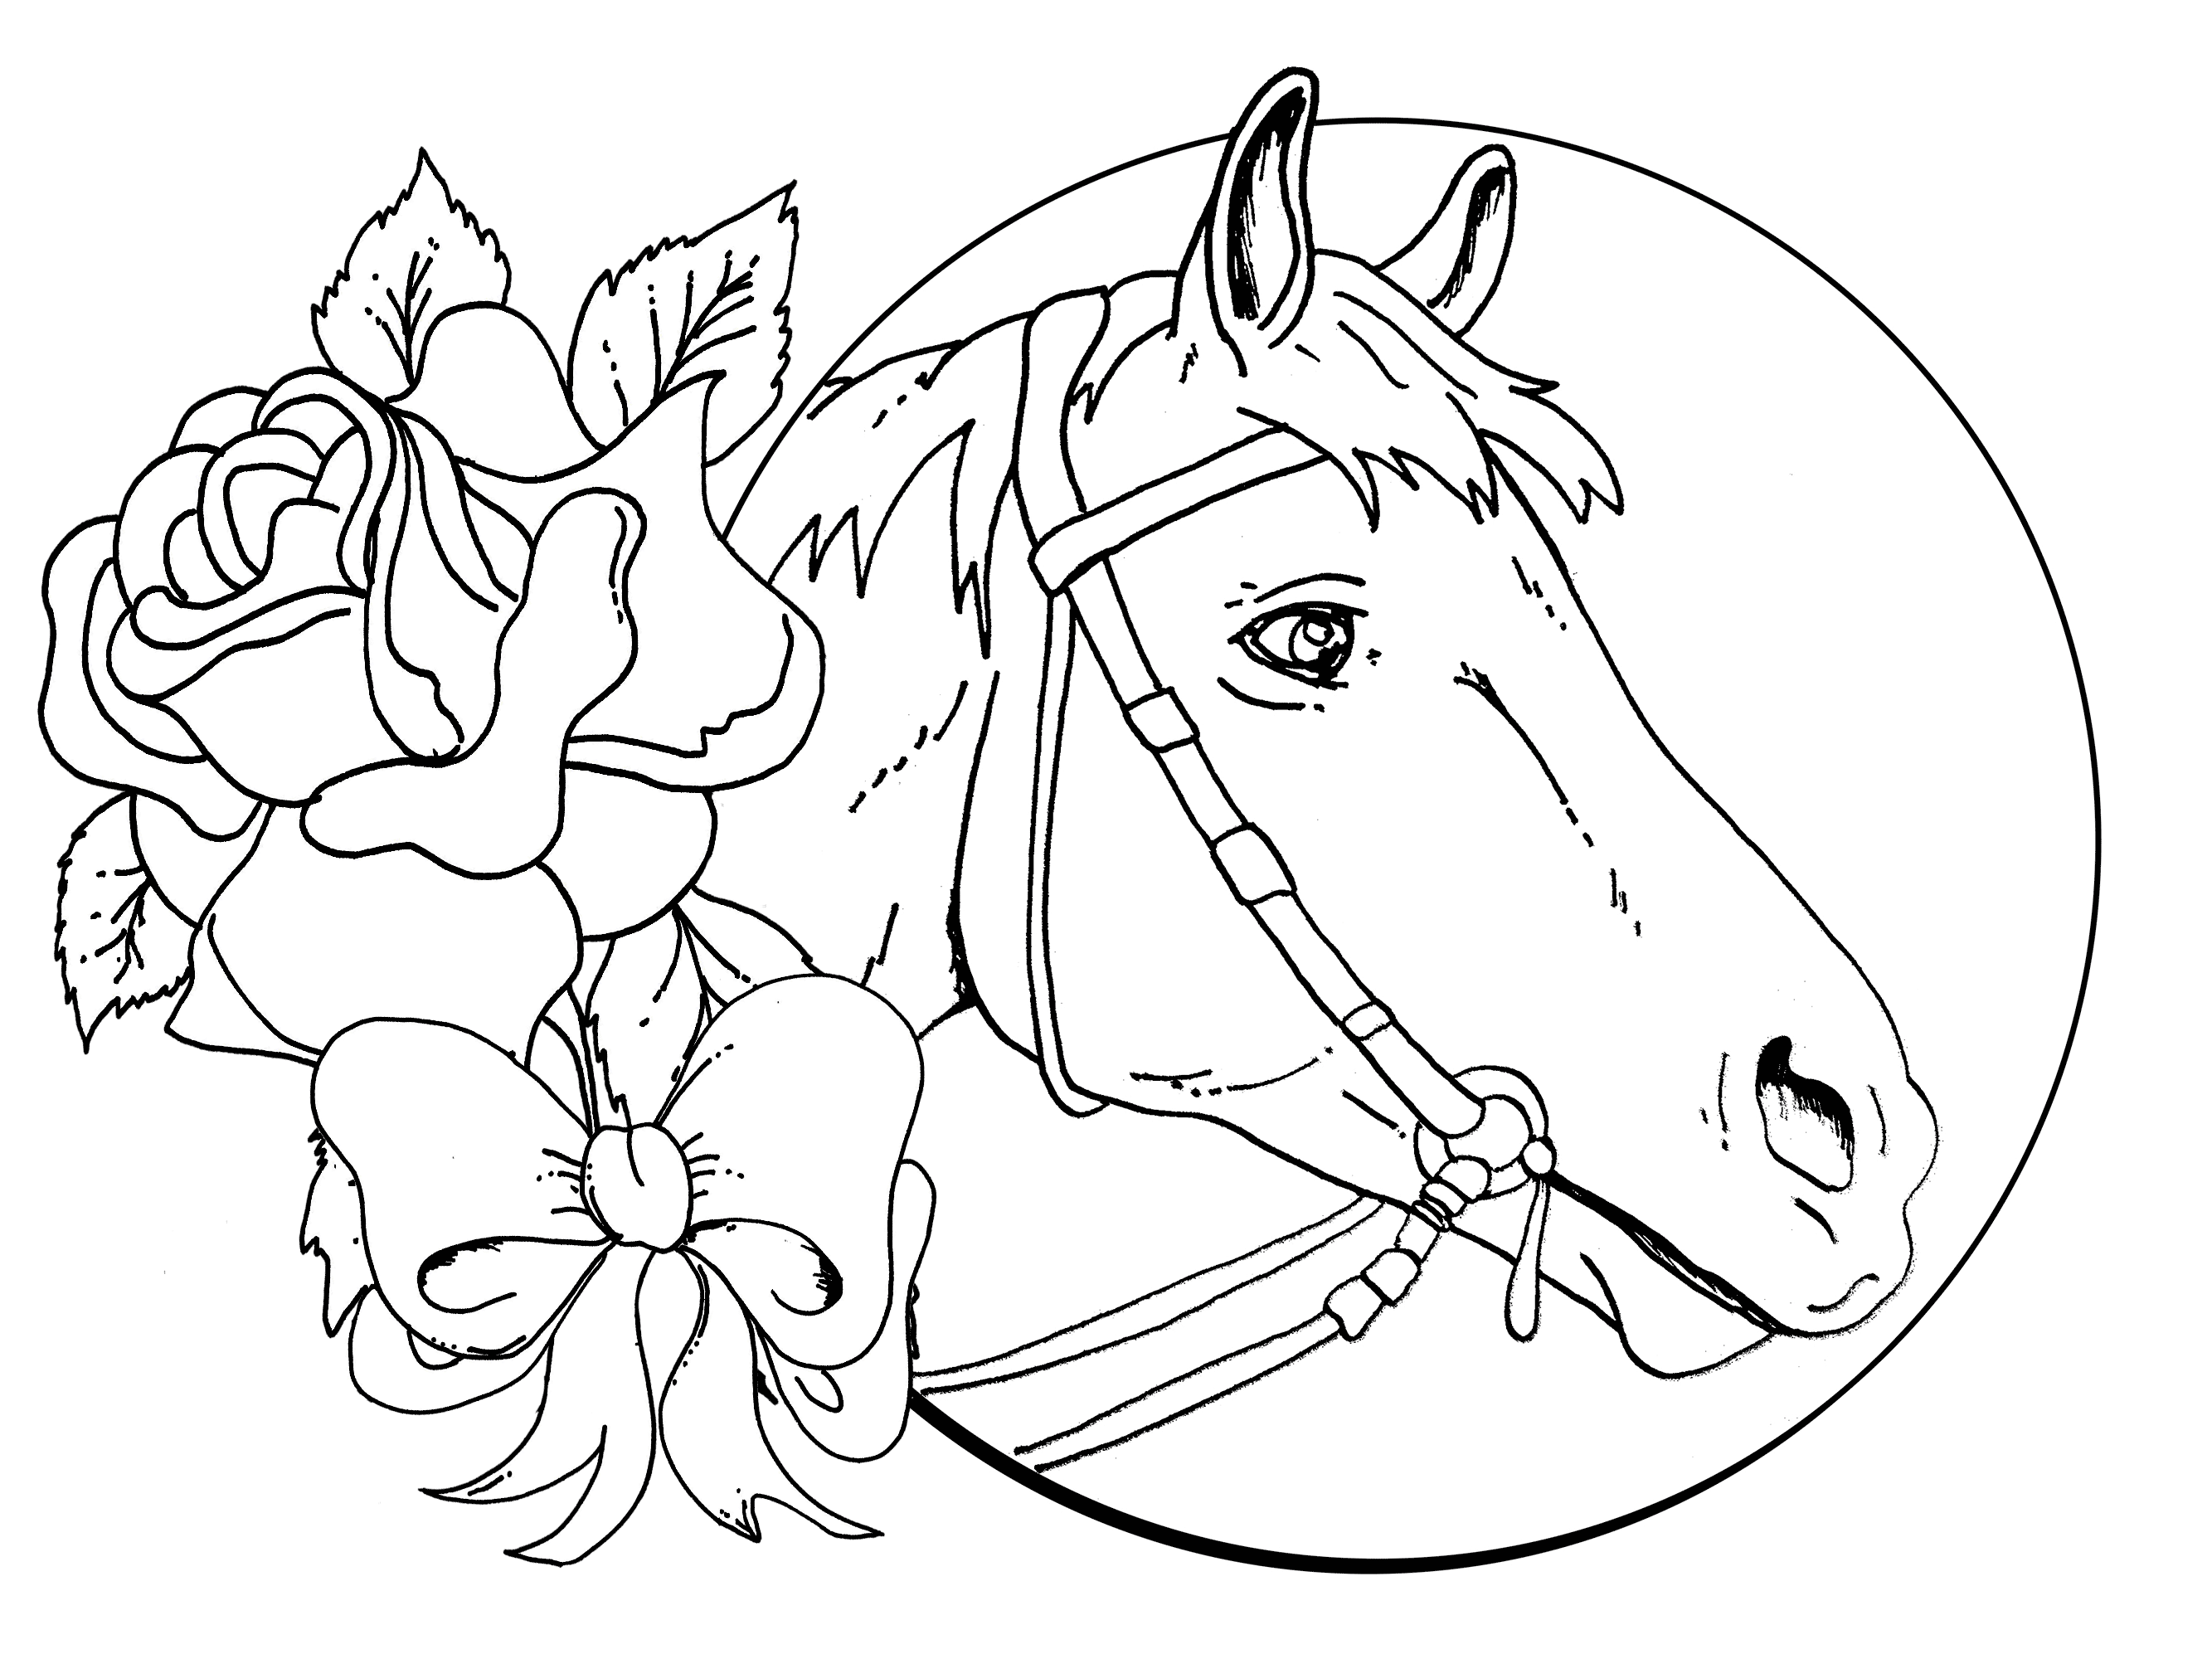 Free coloring horse pictures to print - Beautiful Horse Coloring Pages Coloring Pages For Girls Free Wallpapers Coloring Pages For Adults Pinterest Horse Wallpaper And Girls